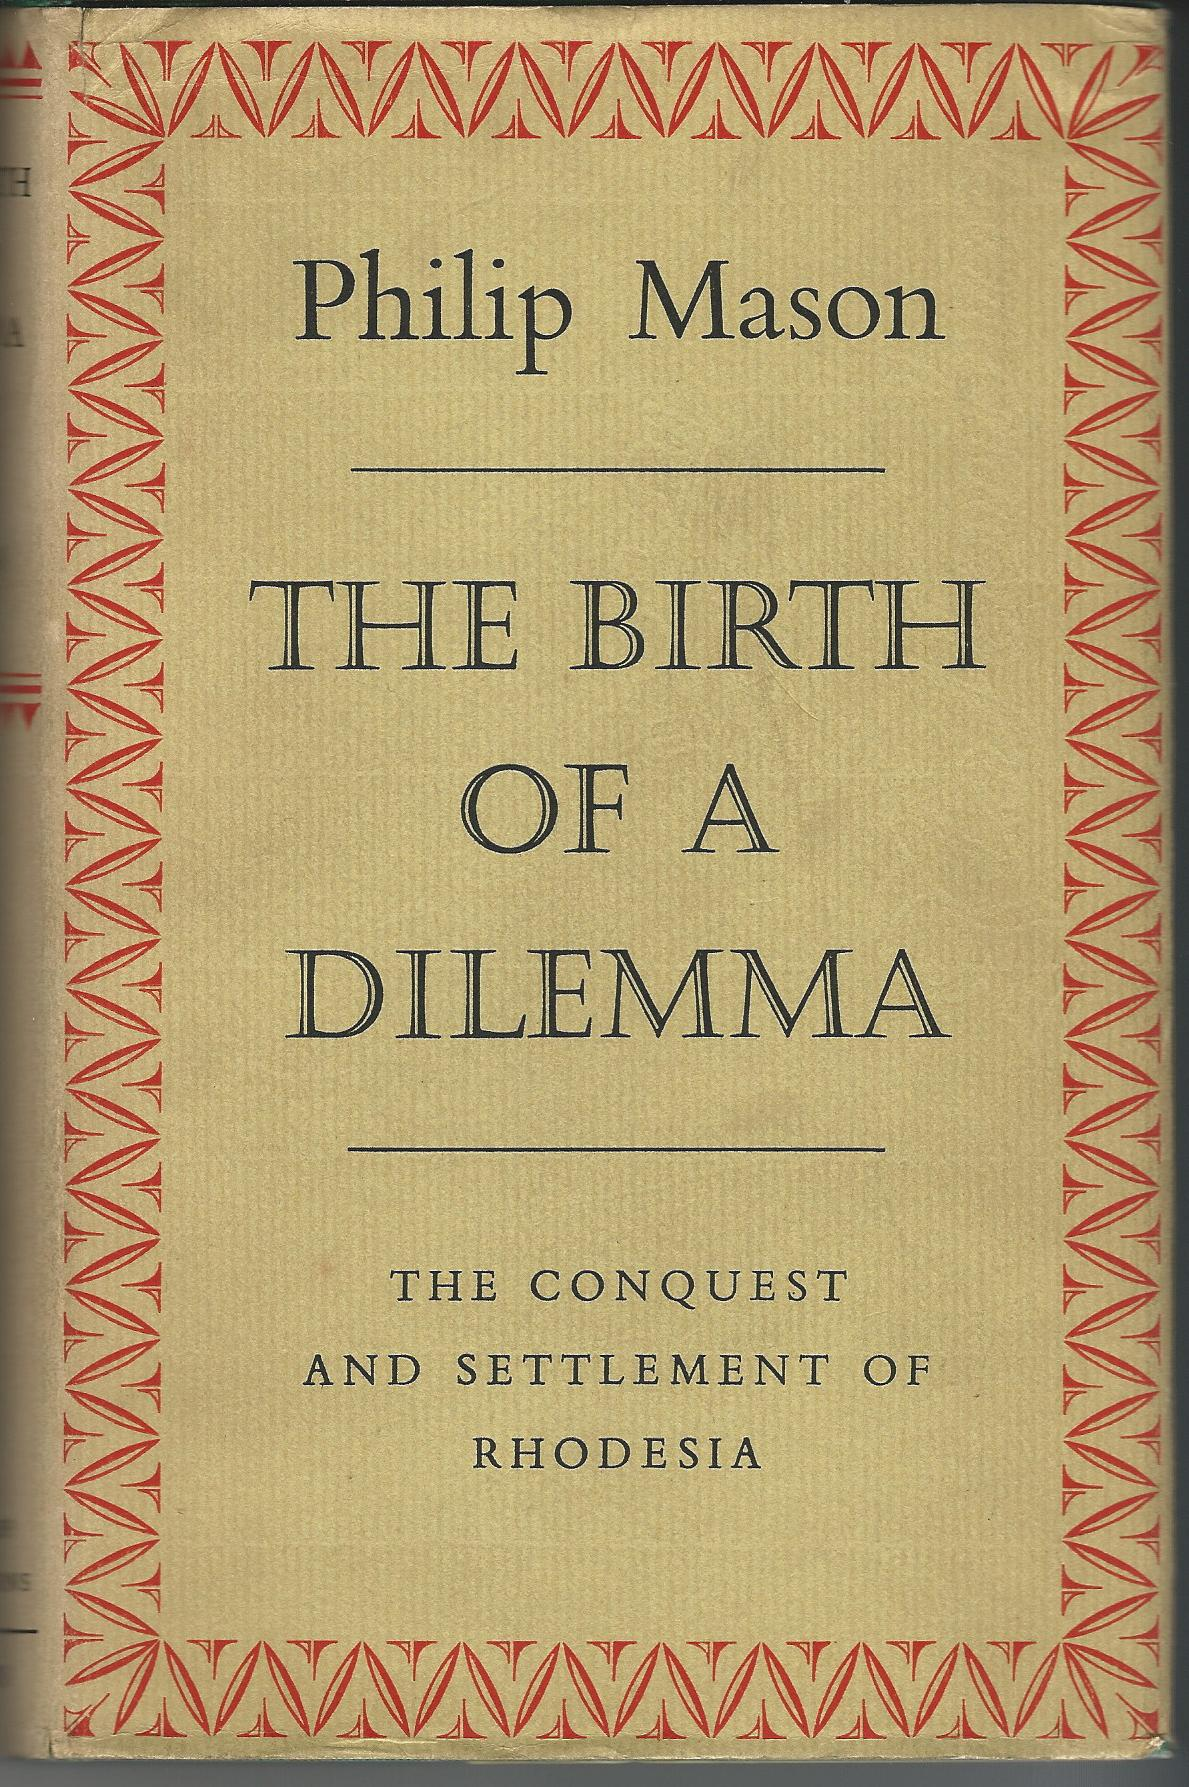 Image for The Birth of a Dilemma: The Conquest and Settlement of Rhodesia.